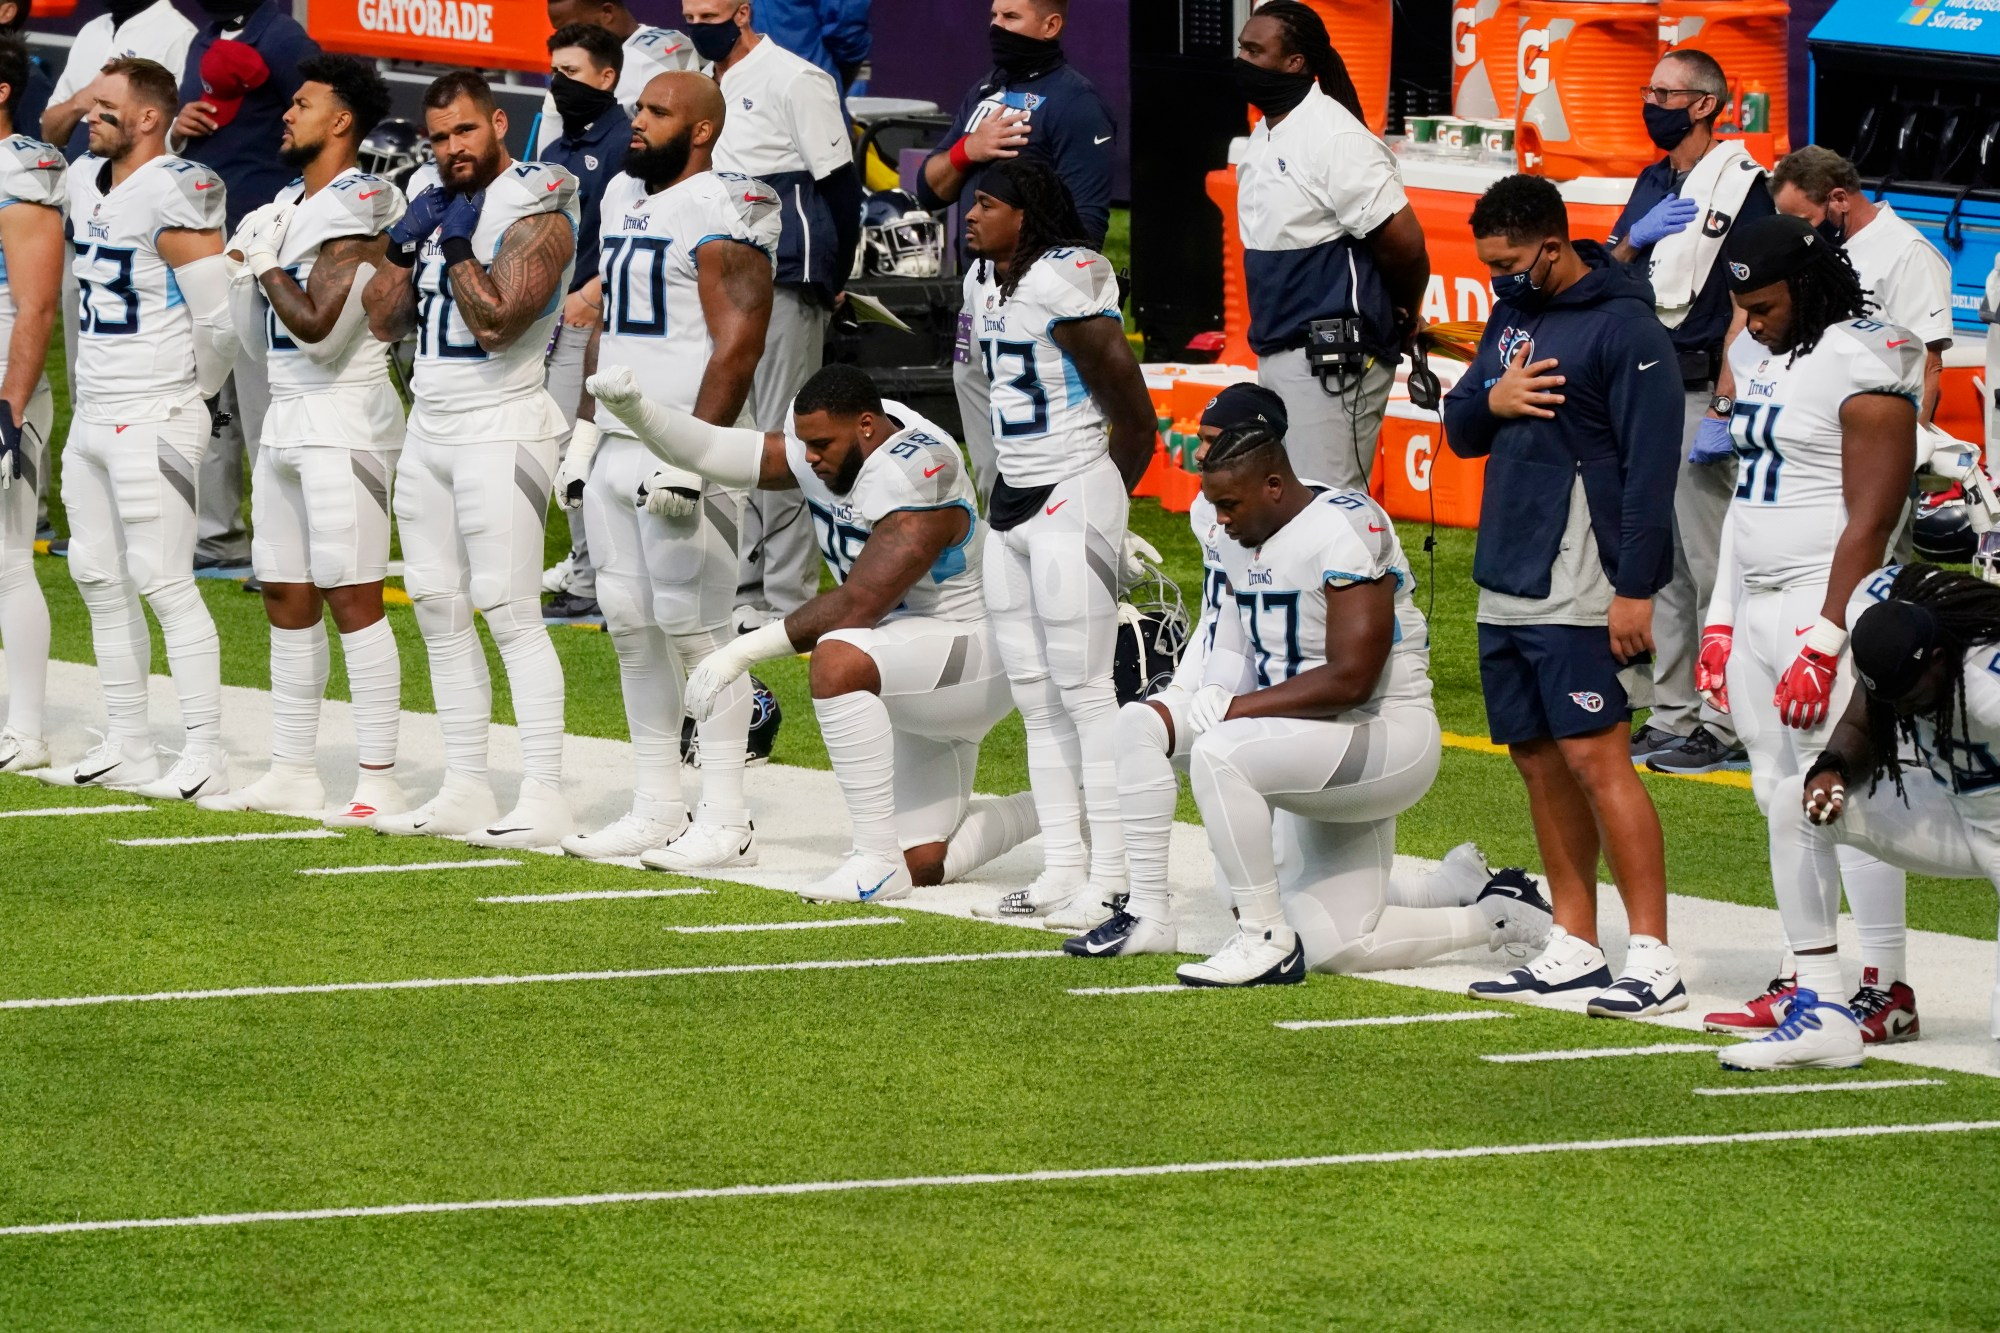 Members of the Tennessee Titans take part in the national anthem before an NFL football game against the Minnesota Vikings, Sunday, Sept. 27, 2020, in Minneapolis. The NFL says the Tennessee Titans and Minnesota Vikings are suspending in-person activities after the Titans had three players test positive for the coronavirus, along with five other personnel. The league says both clubs are working closely with the NFL and the players' union on tracing contacts, more testing and monitoring developments. The Titans are scheduled to host the Pittsburgh Steelers on Sunday.(AP Photo/Jim Mone)